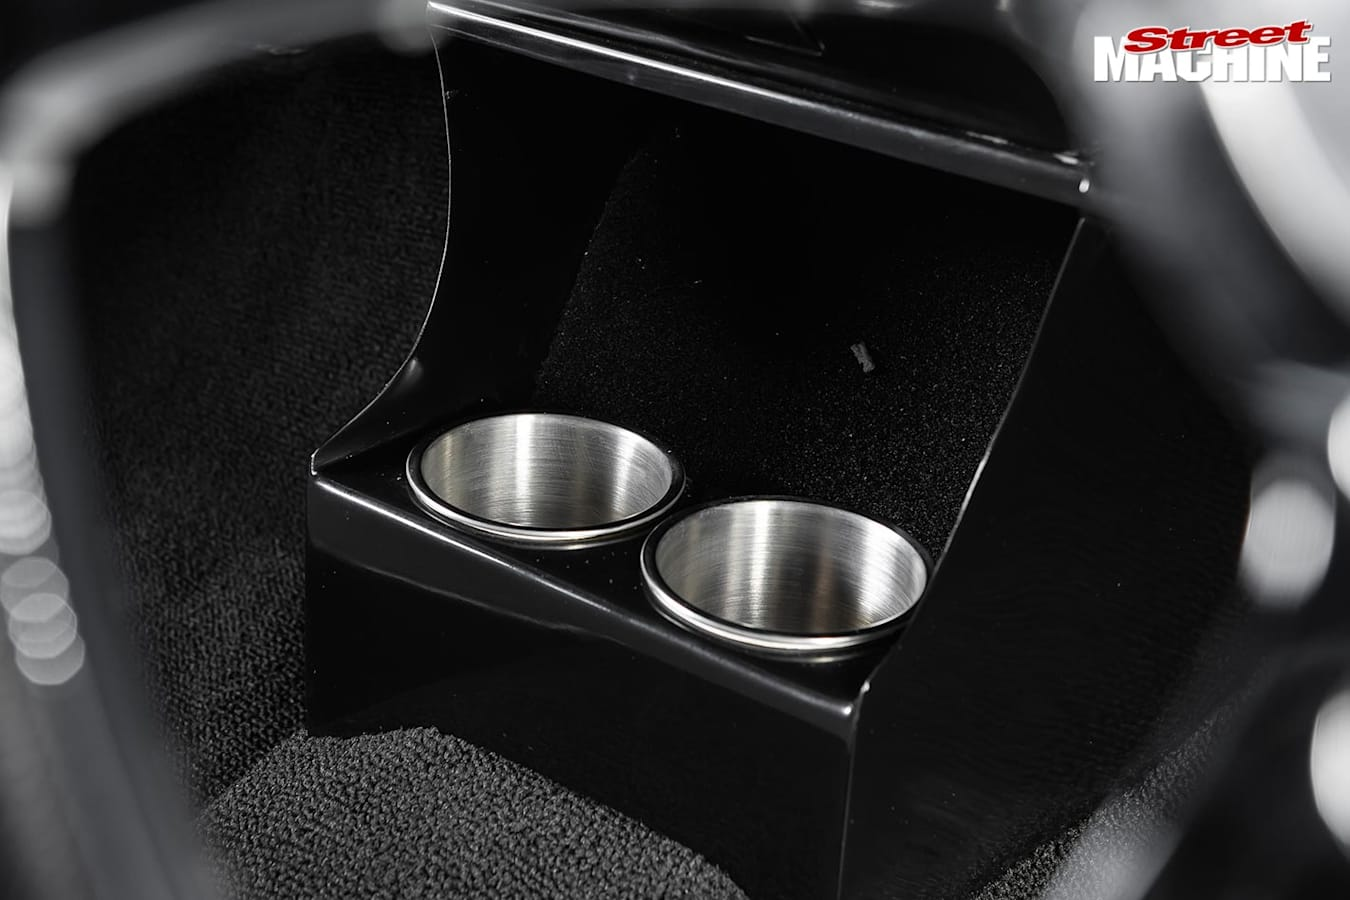 Holden HT Kingswood cup holders